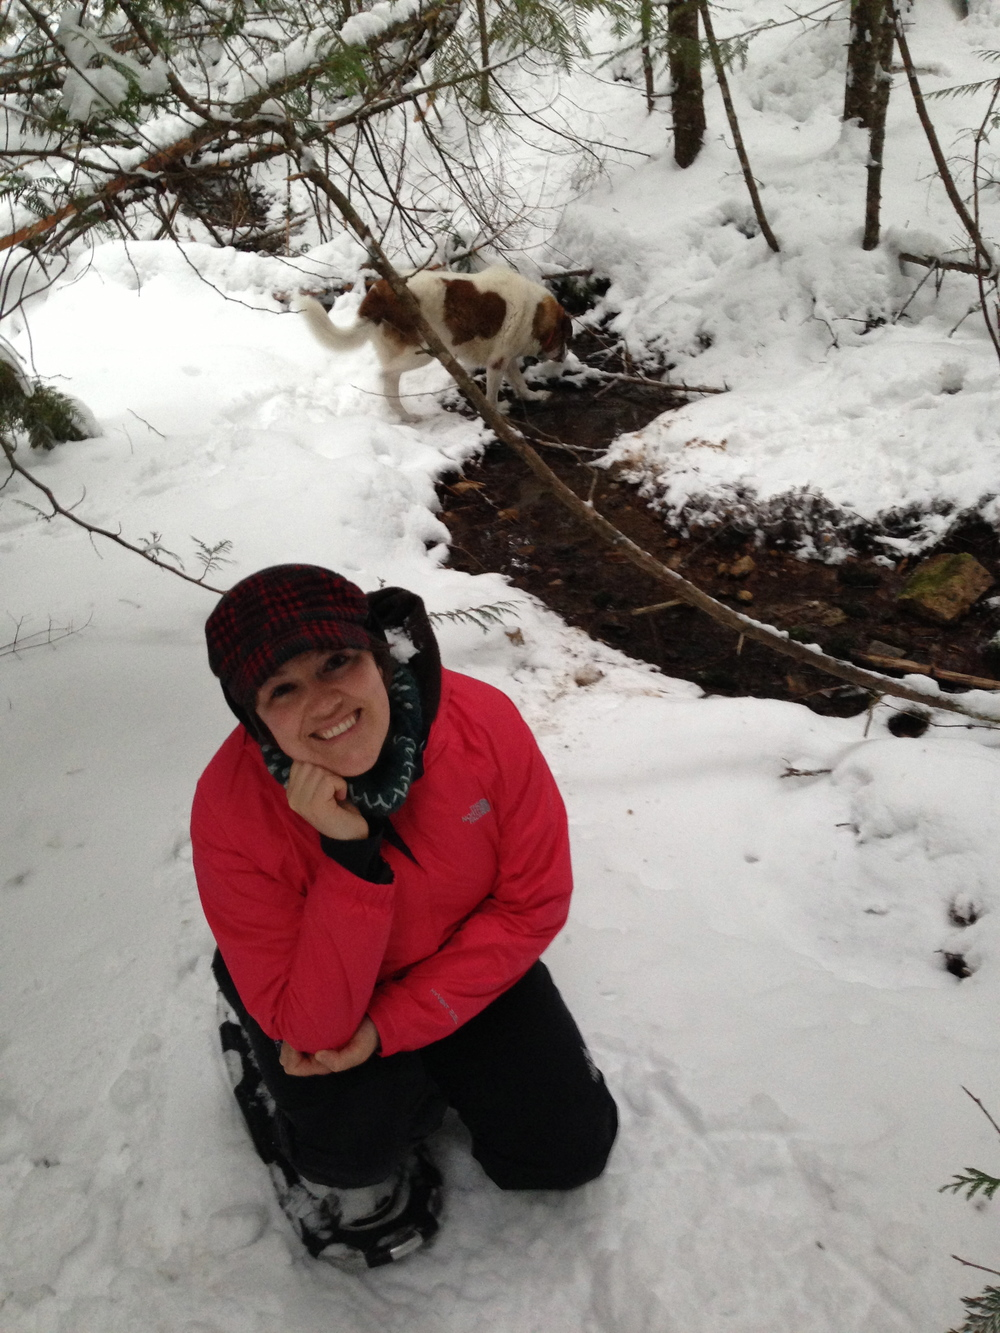 Jill snowshoeing near her home in Potlatch, Idaho with Woody the dog.